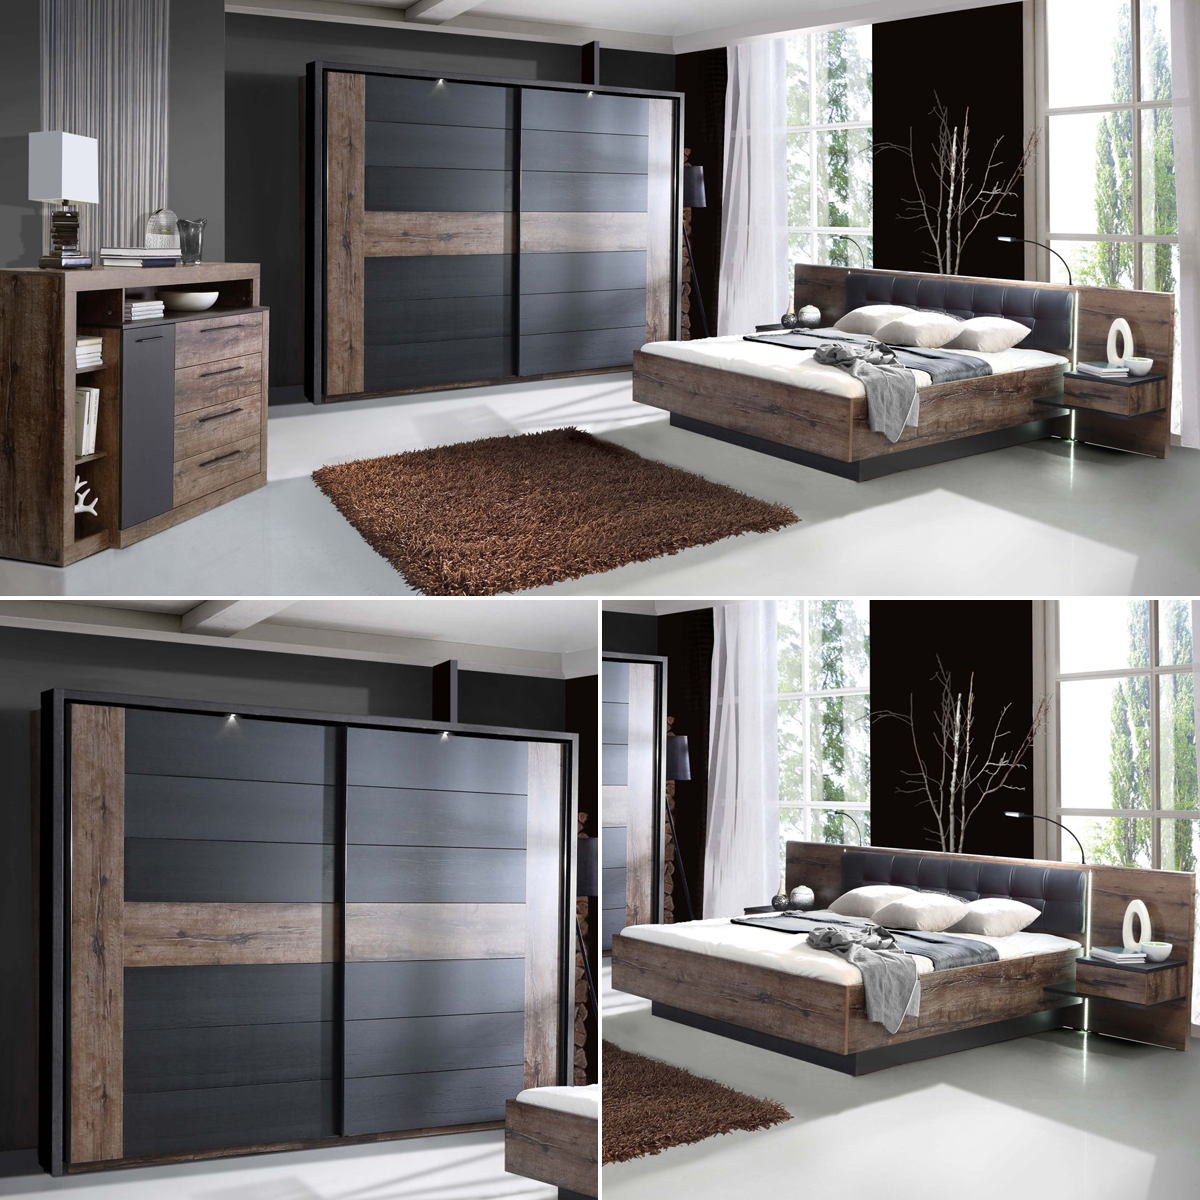 schlafzimmer bellevue bett 180x200 nachttische schwebet renschrank sideboard ebay. Black Bedroom Furniture Sets. Home Design Ideas